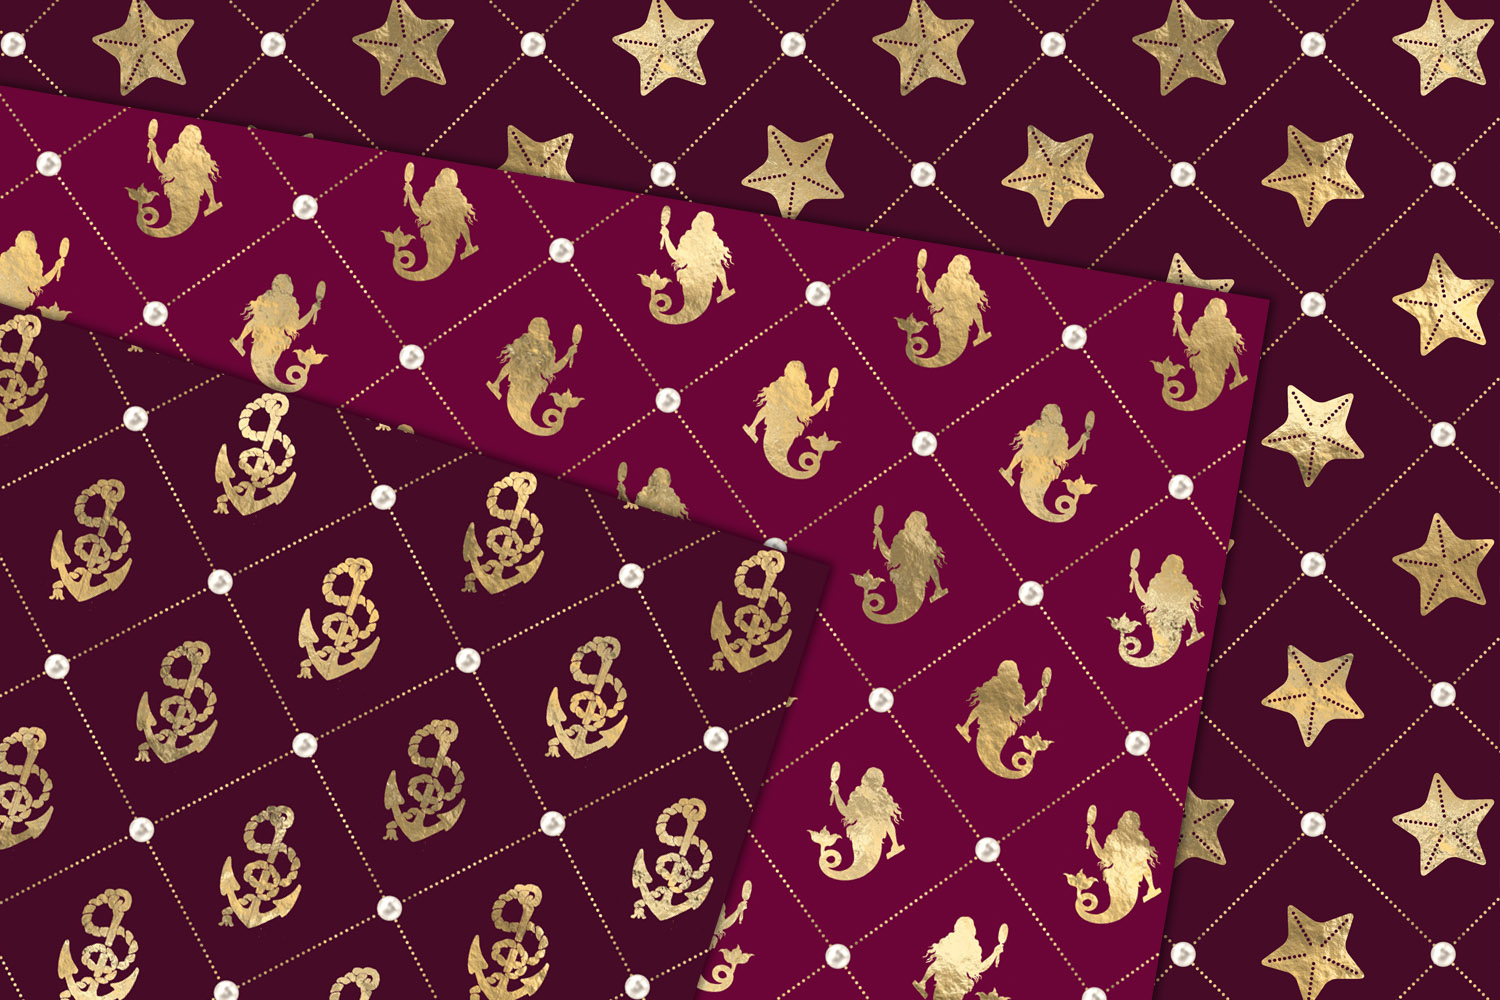 Burgundy and Gold Nautical Digital Paper example image 2